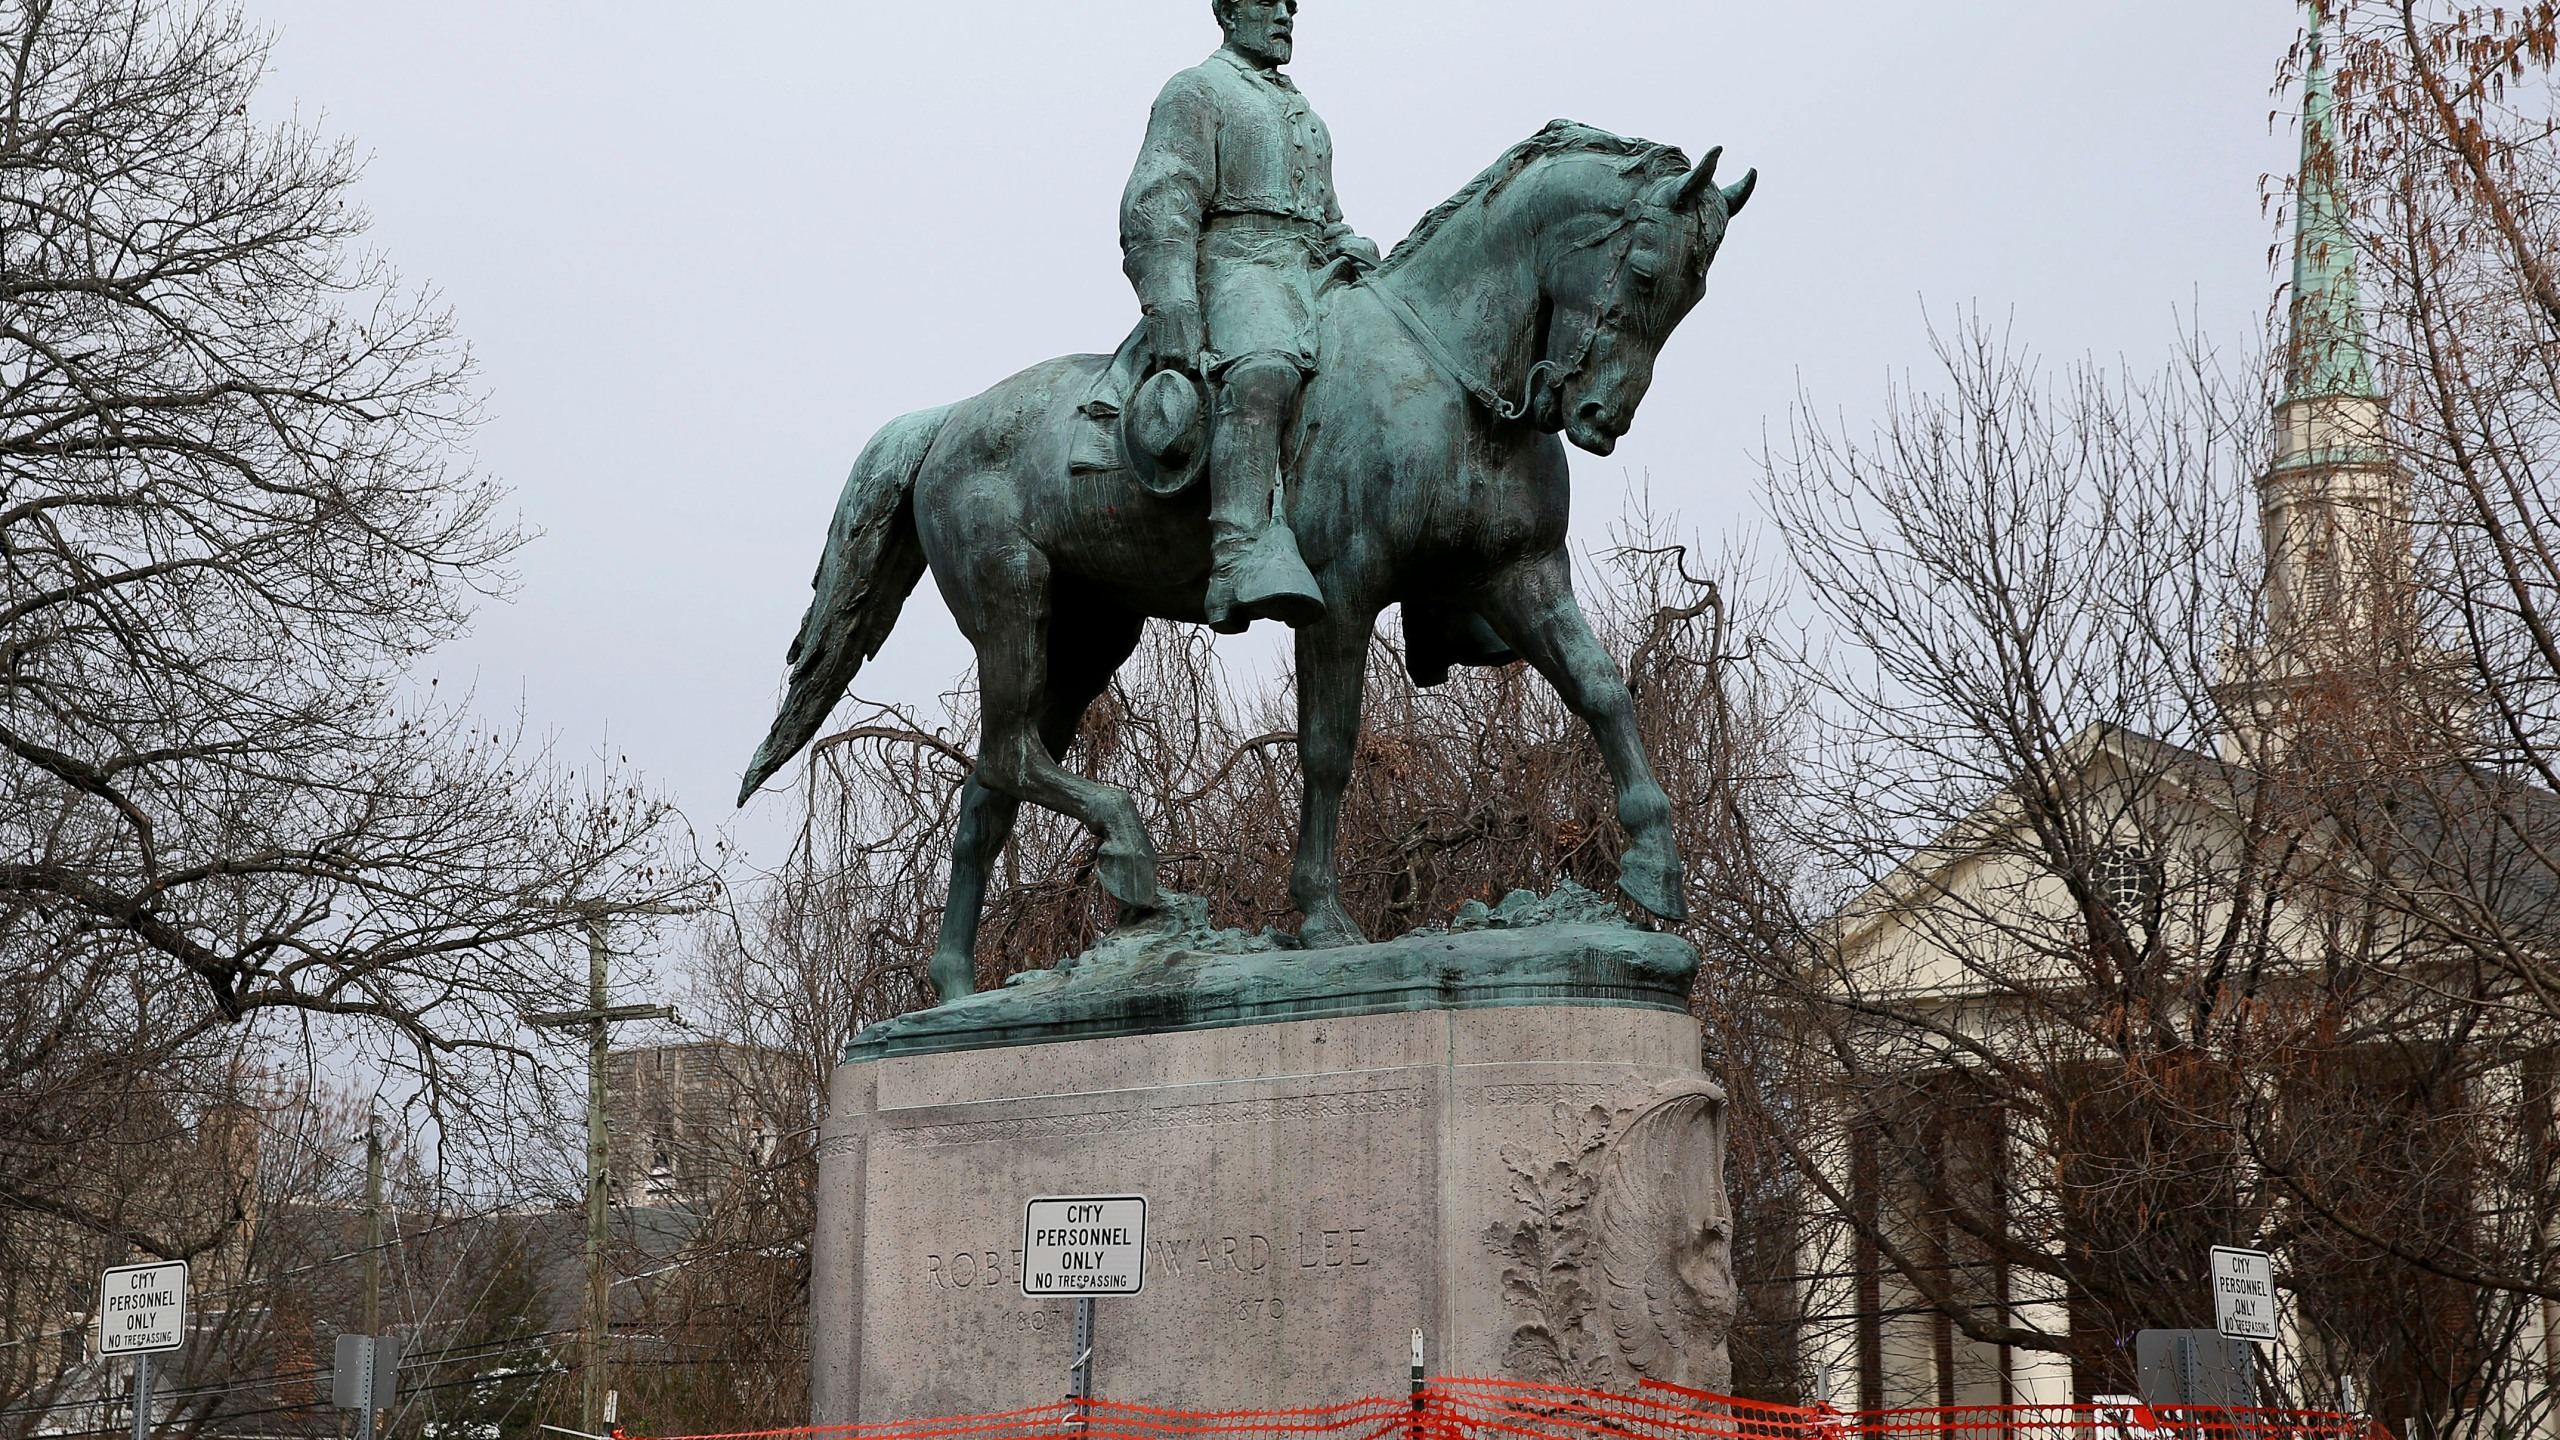 The statue of Robert E. Lee is seen uncovered in Emancipation Park in Charlottesville, Va., on Feb. 28, 2018. (Zack Wajsgras/The Daily Progress via Associated Press)